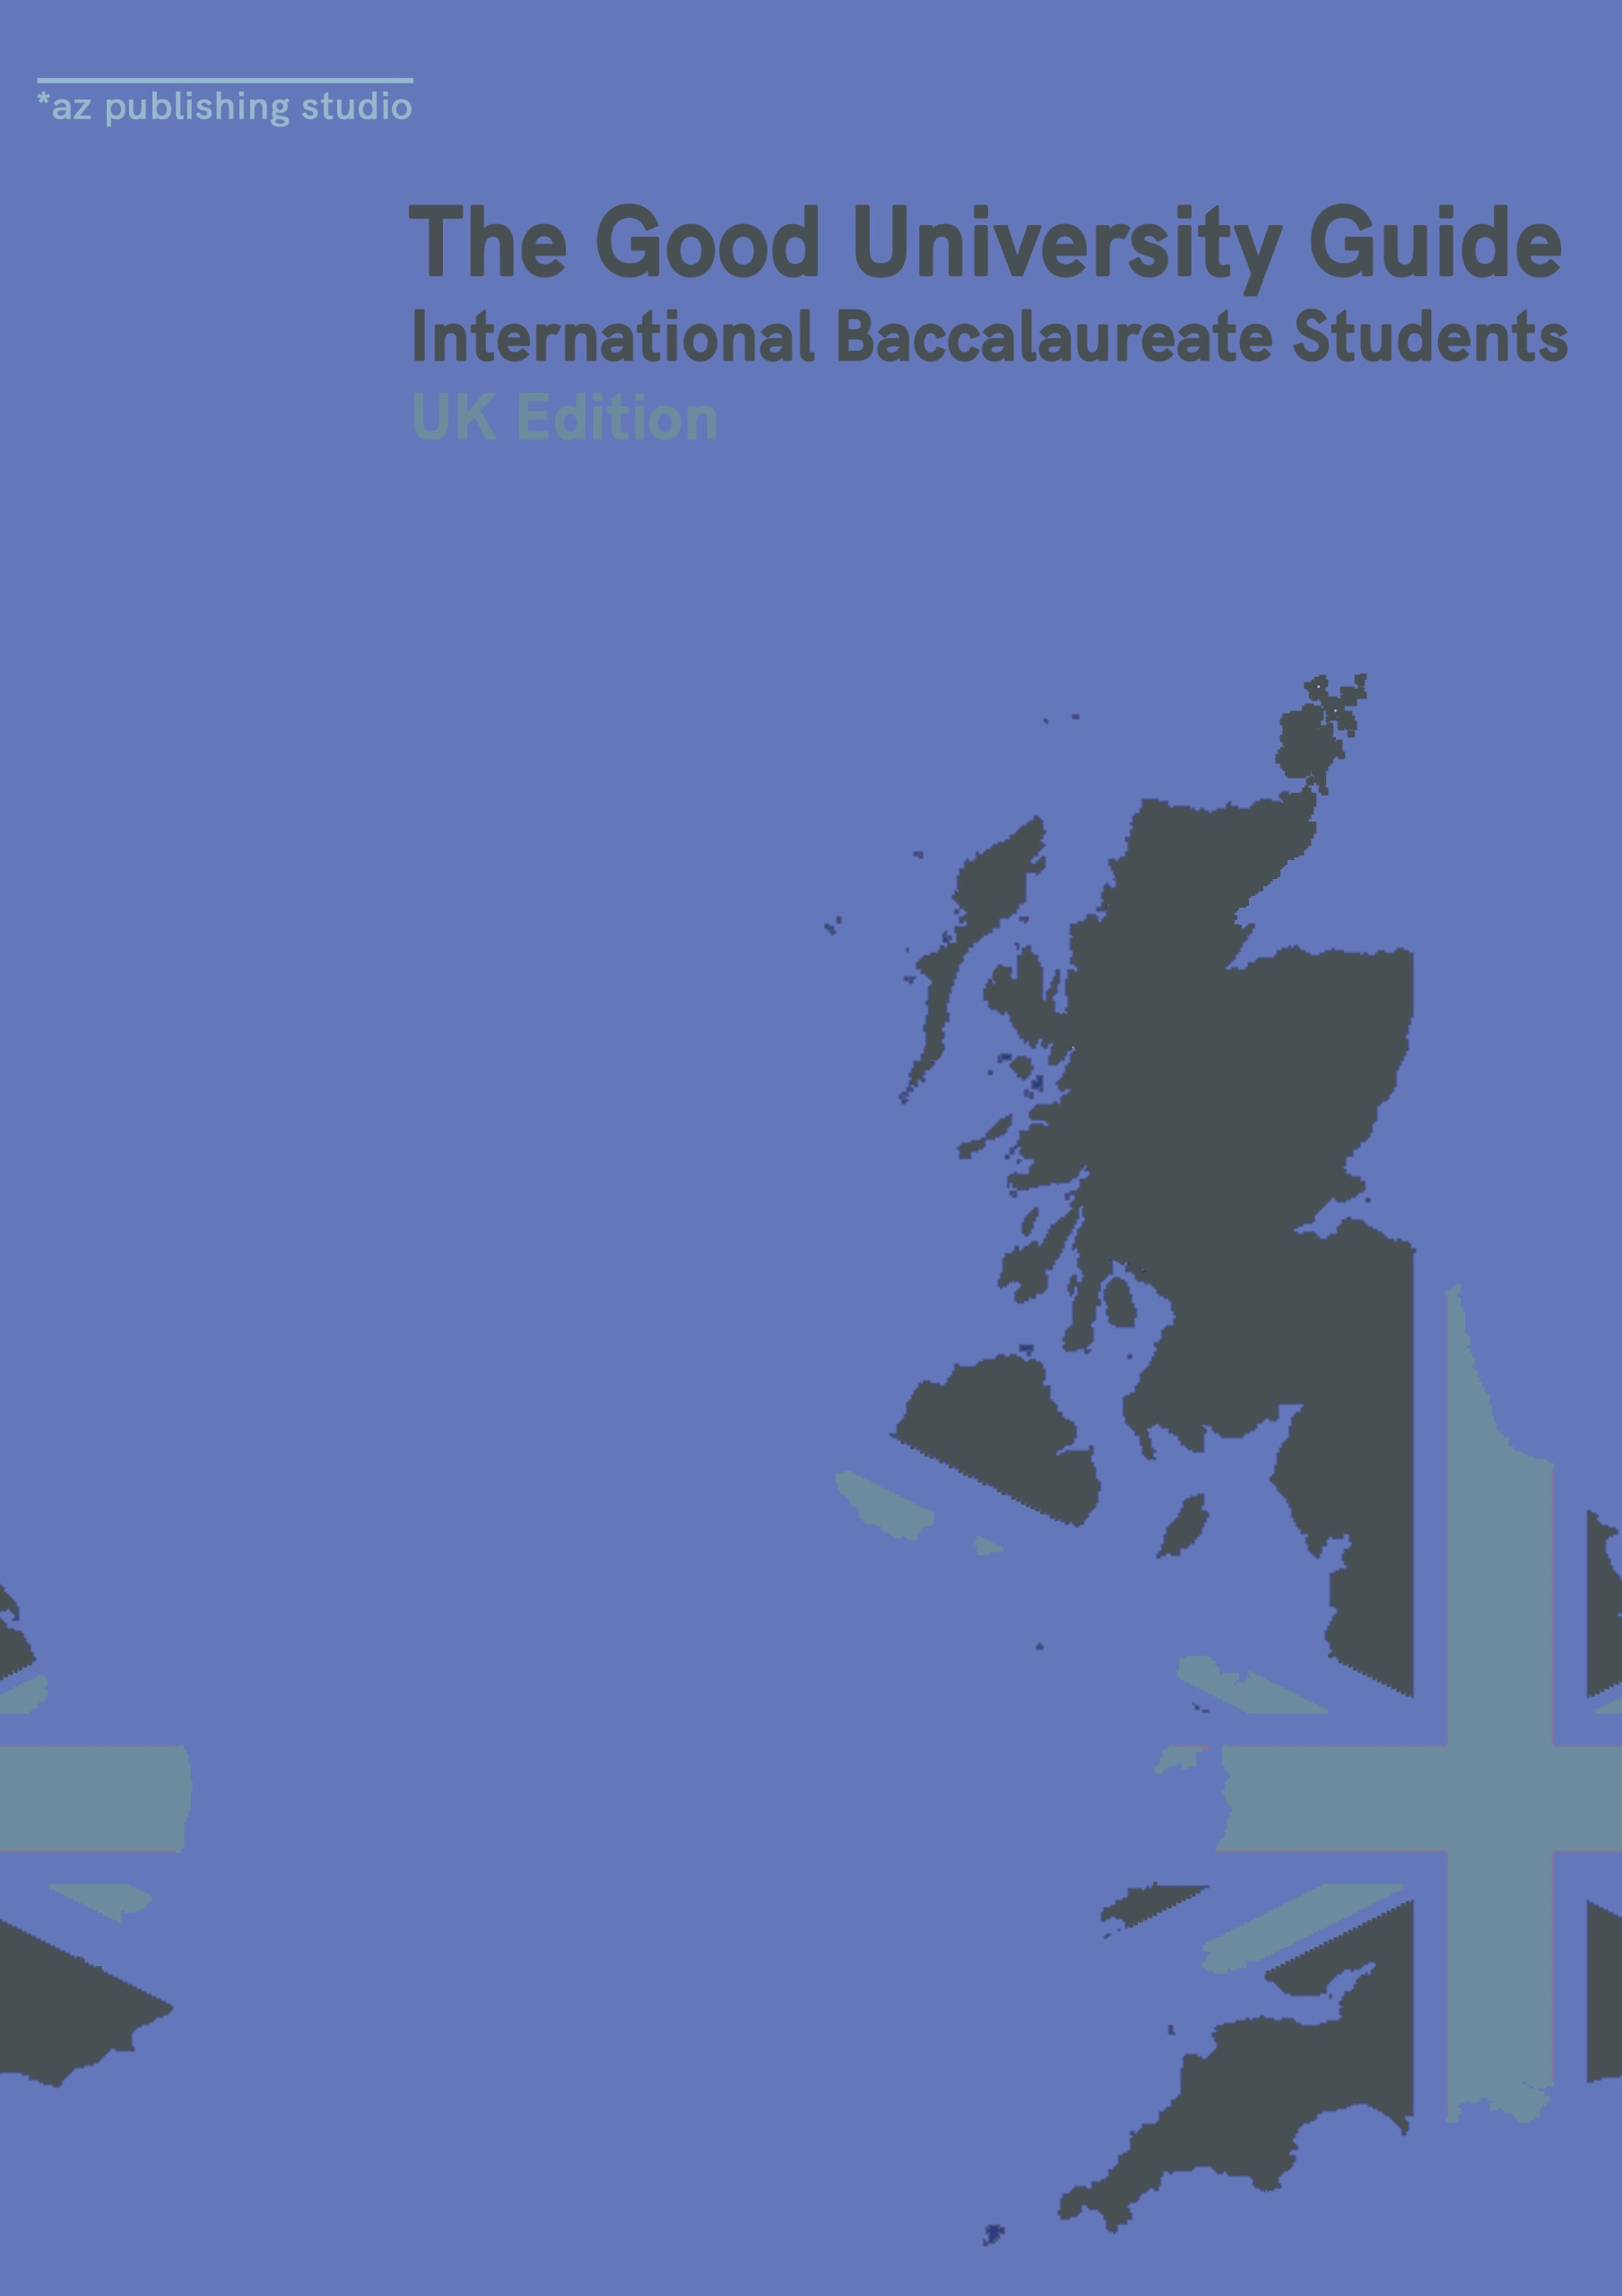 The Good University Guide for IB Students UK Edition